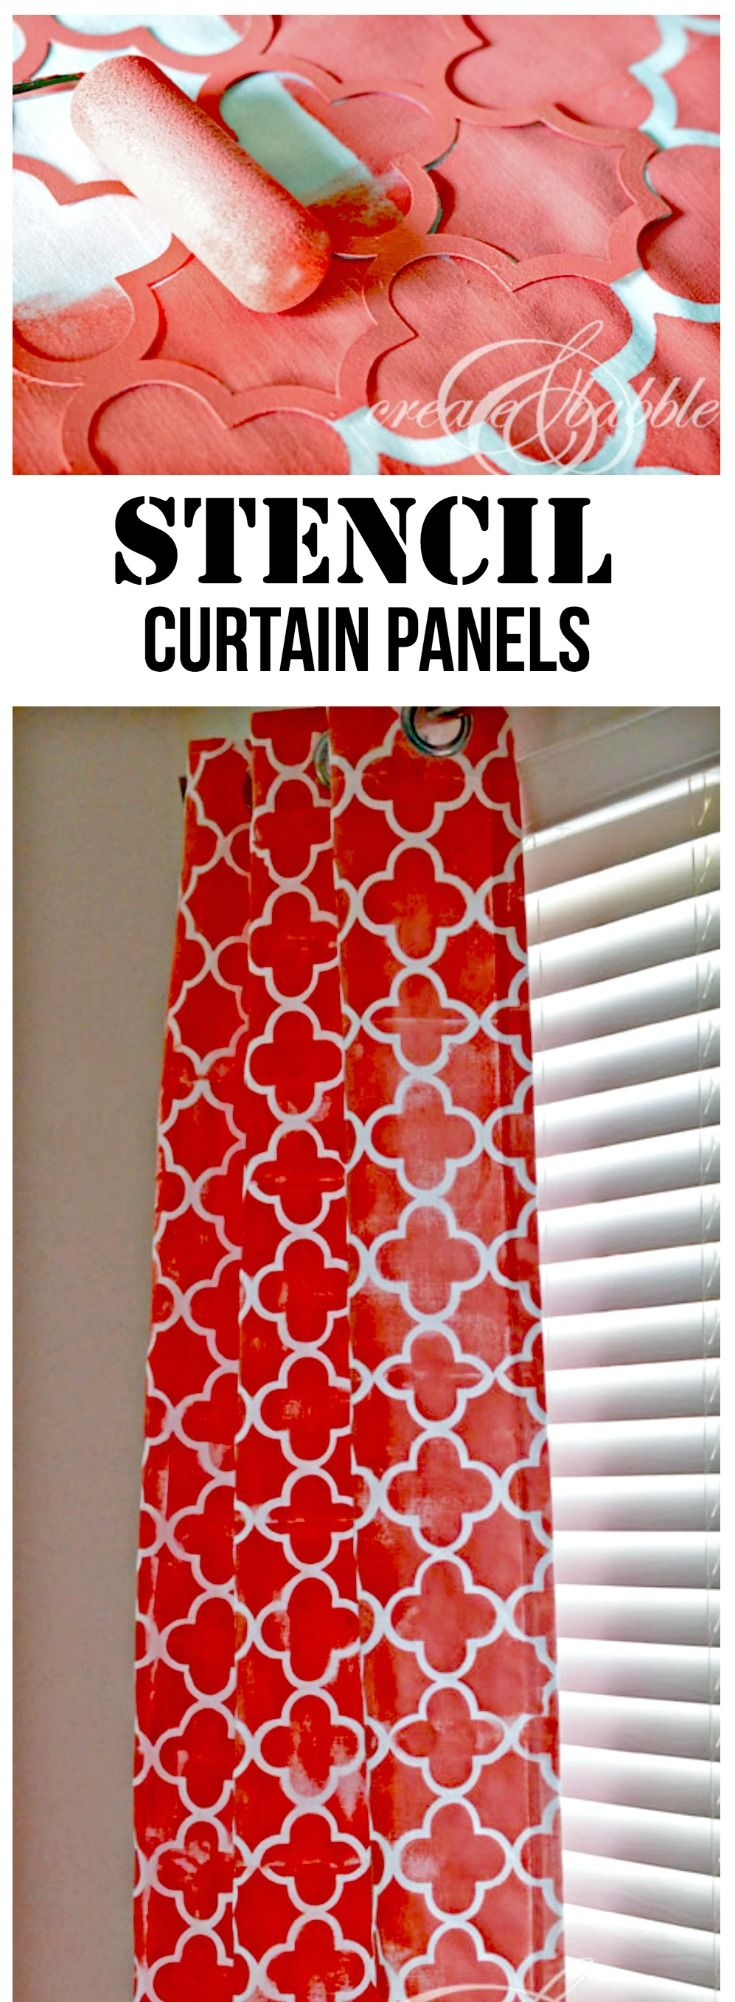 Make Your Own Stencil and Stenciled Curtains